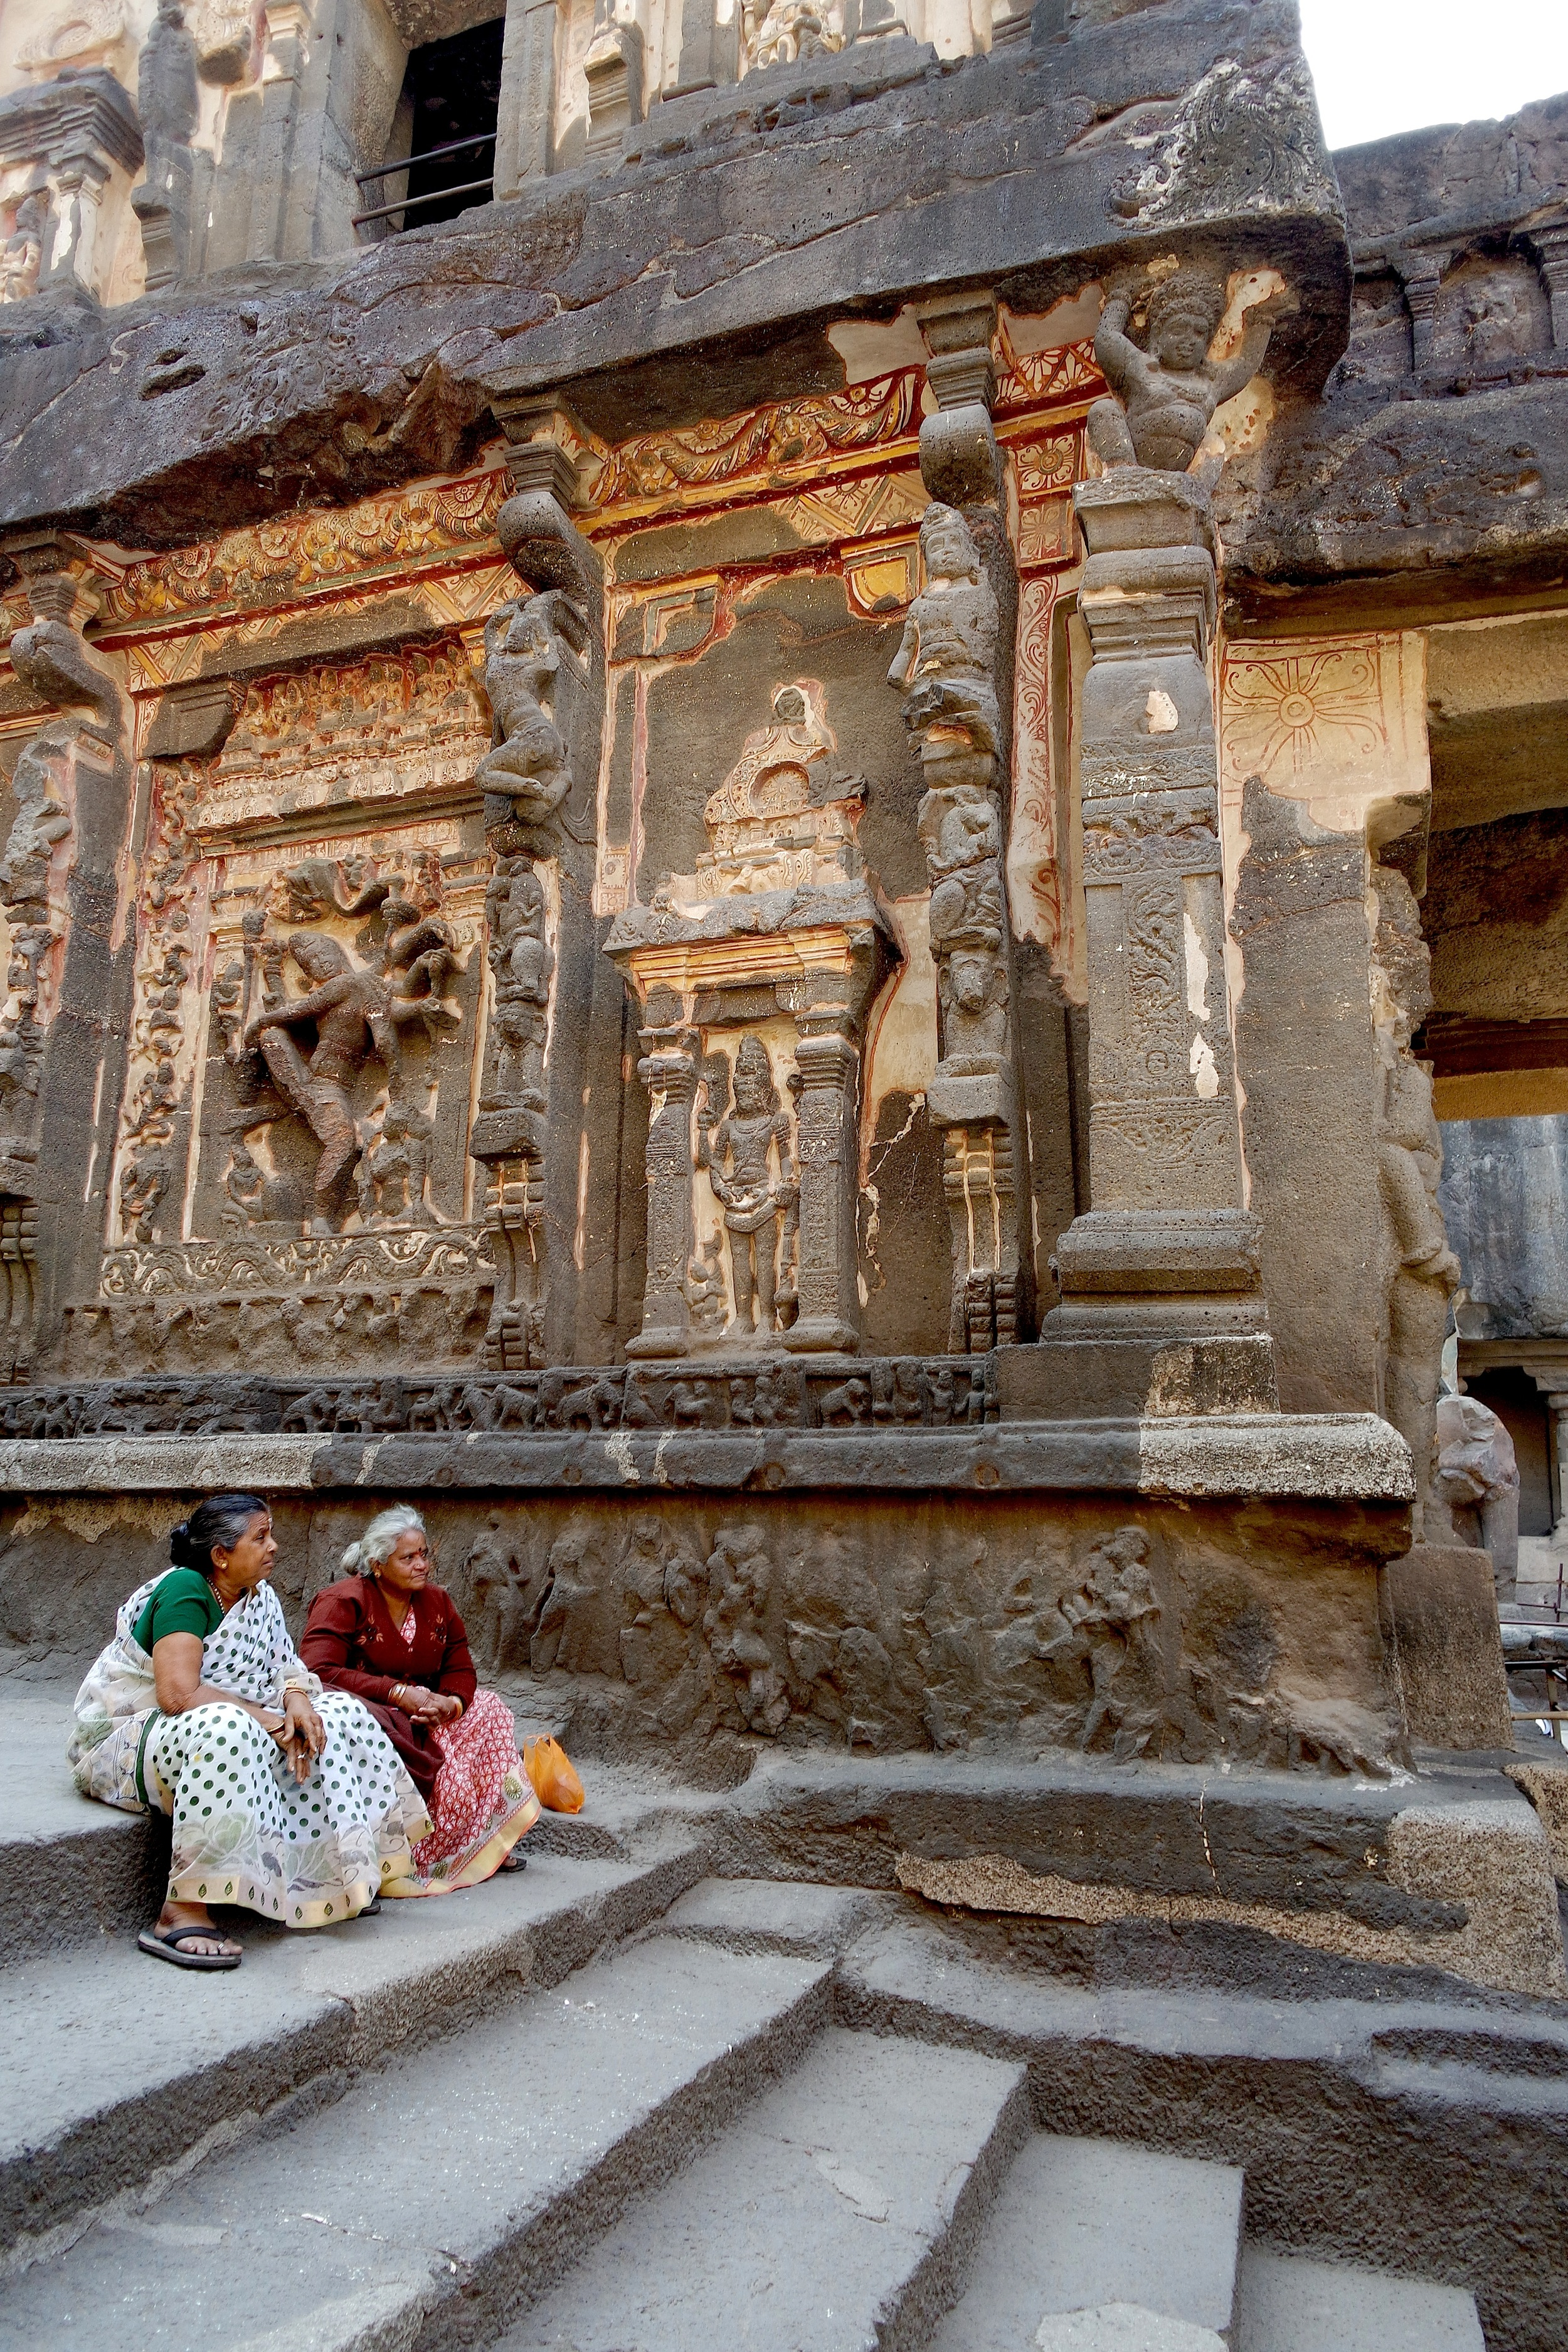 Two women sit on the steps of the massive Hindu temple at Ellora Caves in India